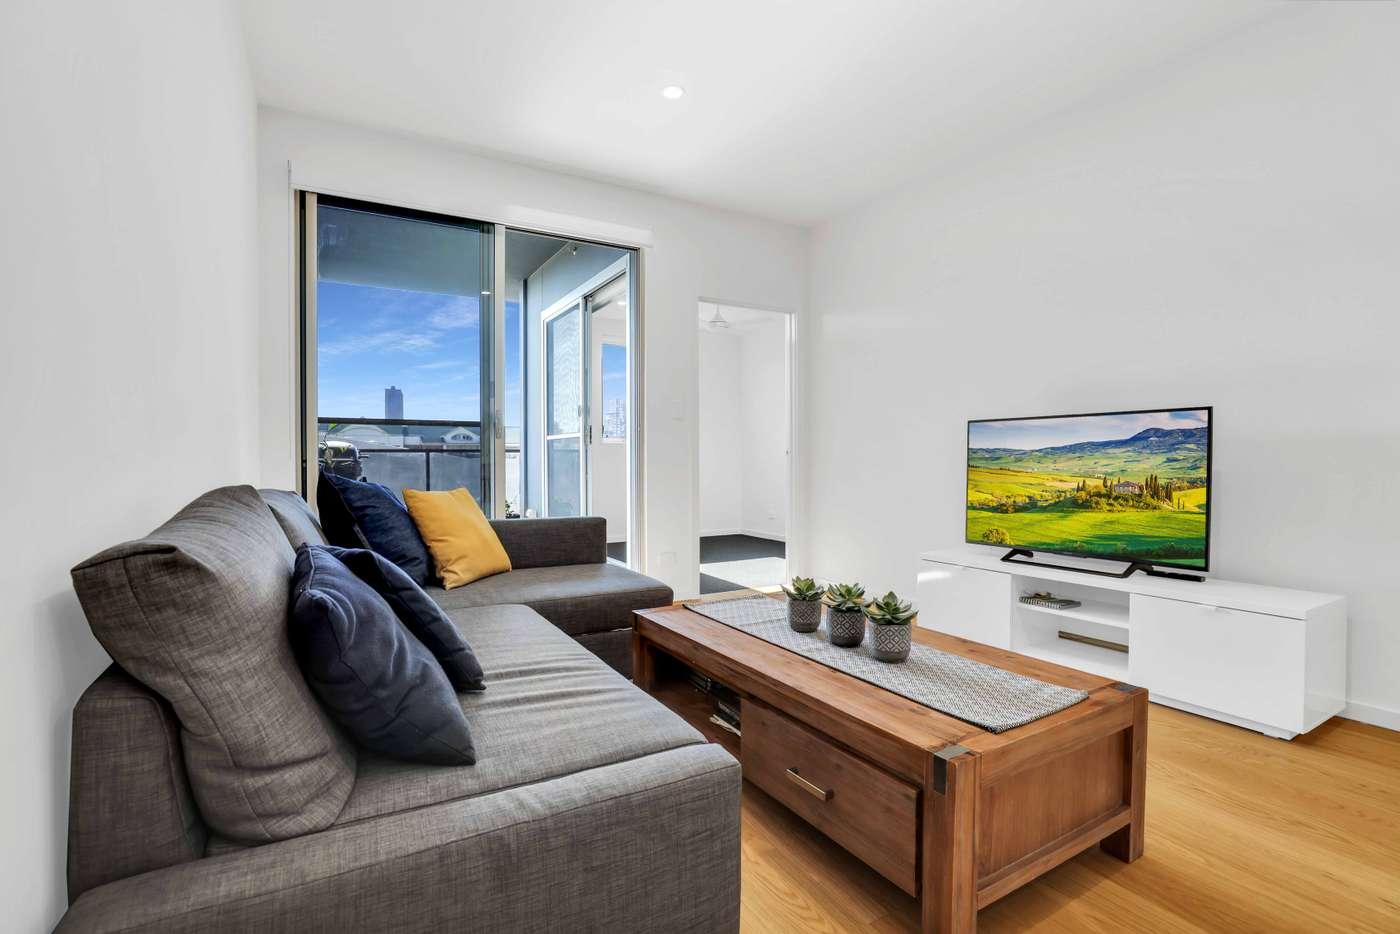 Fifth view of Homely apartment listing, 305/36 Hurtle Square, Adelaide SA 5000